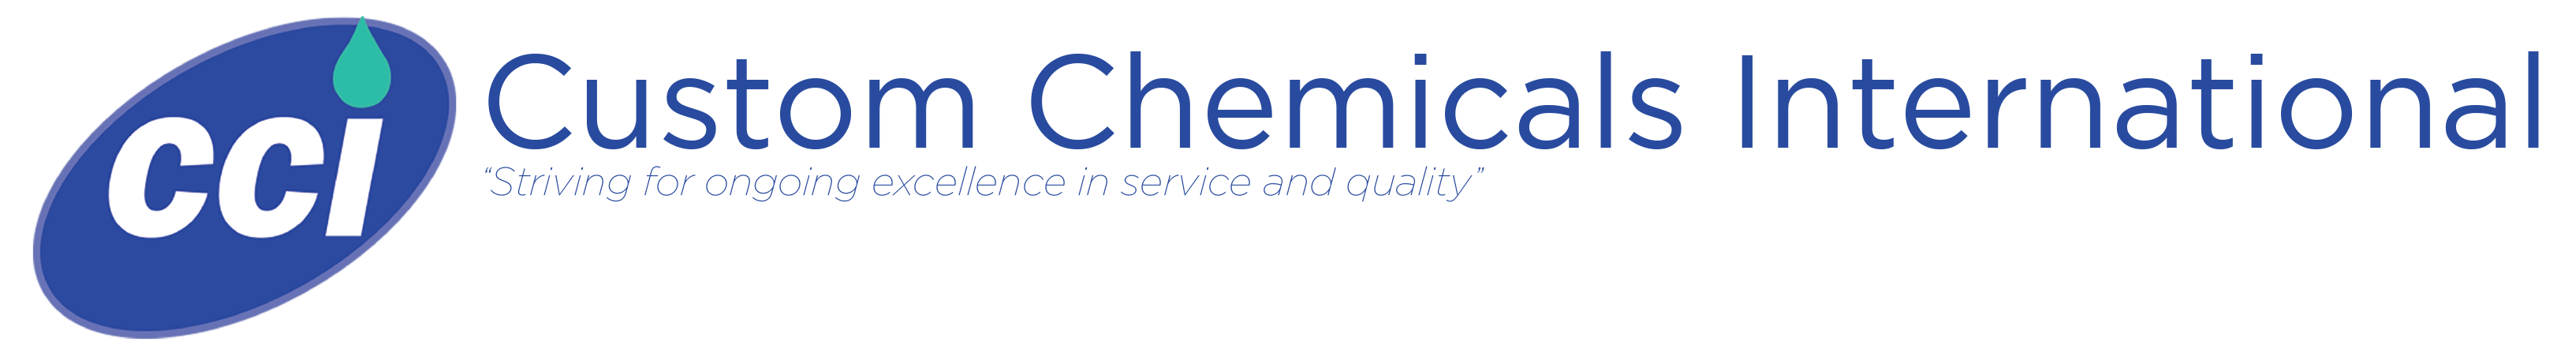 Custom Chemicals International